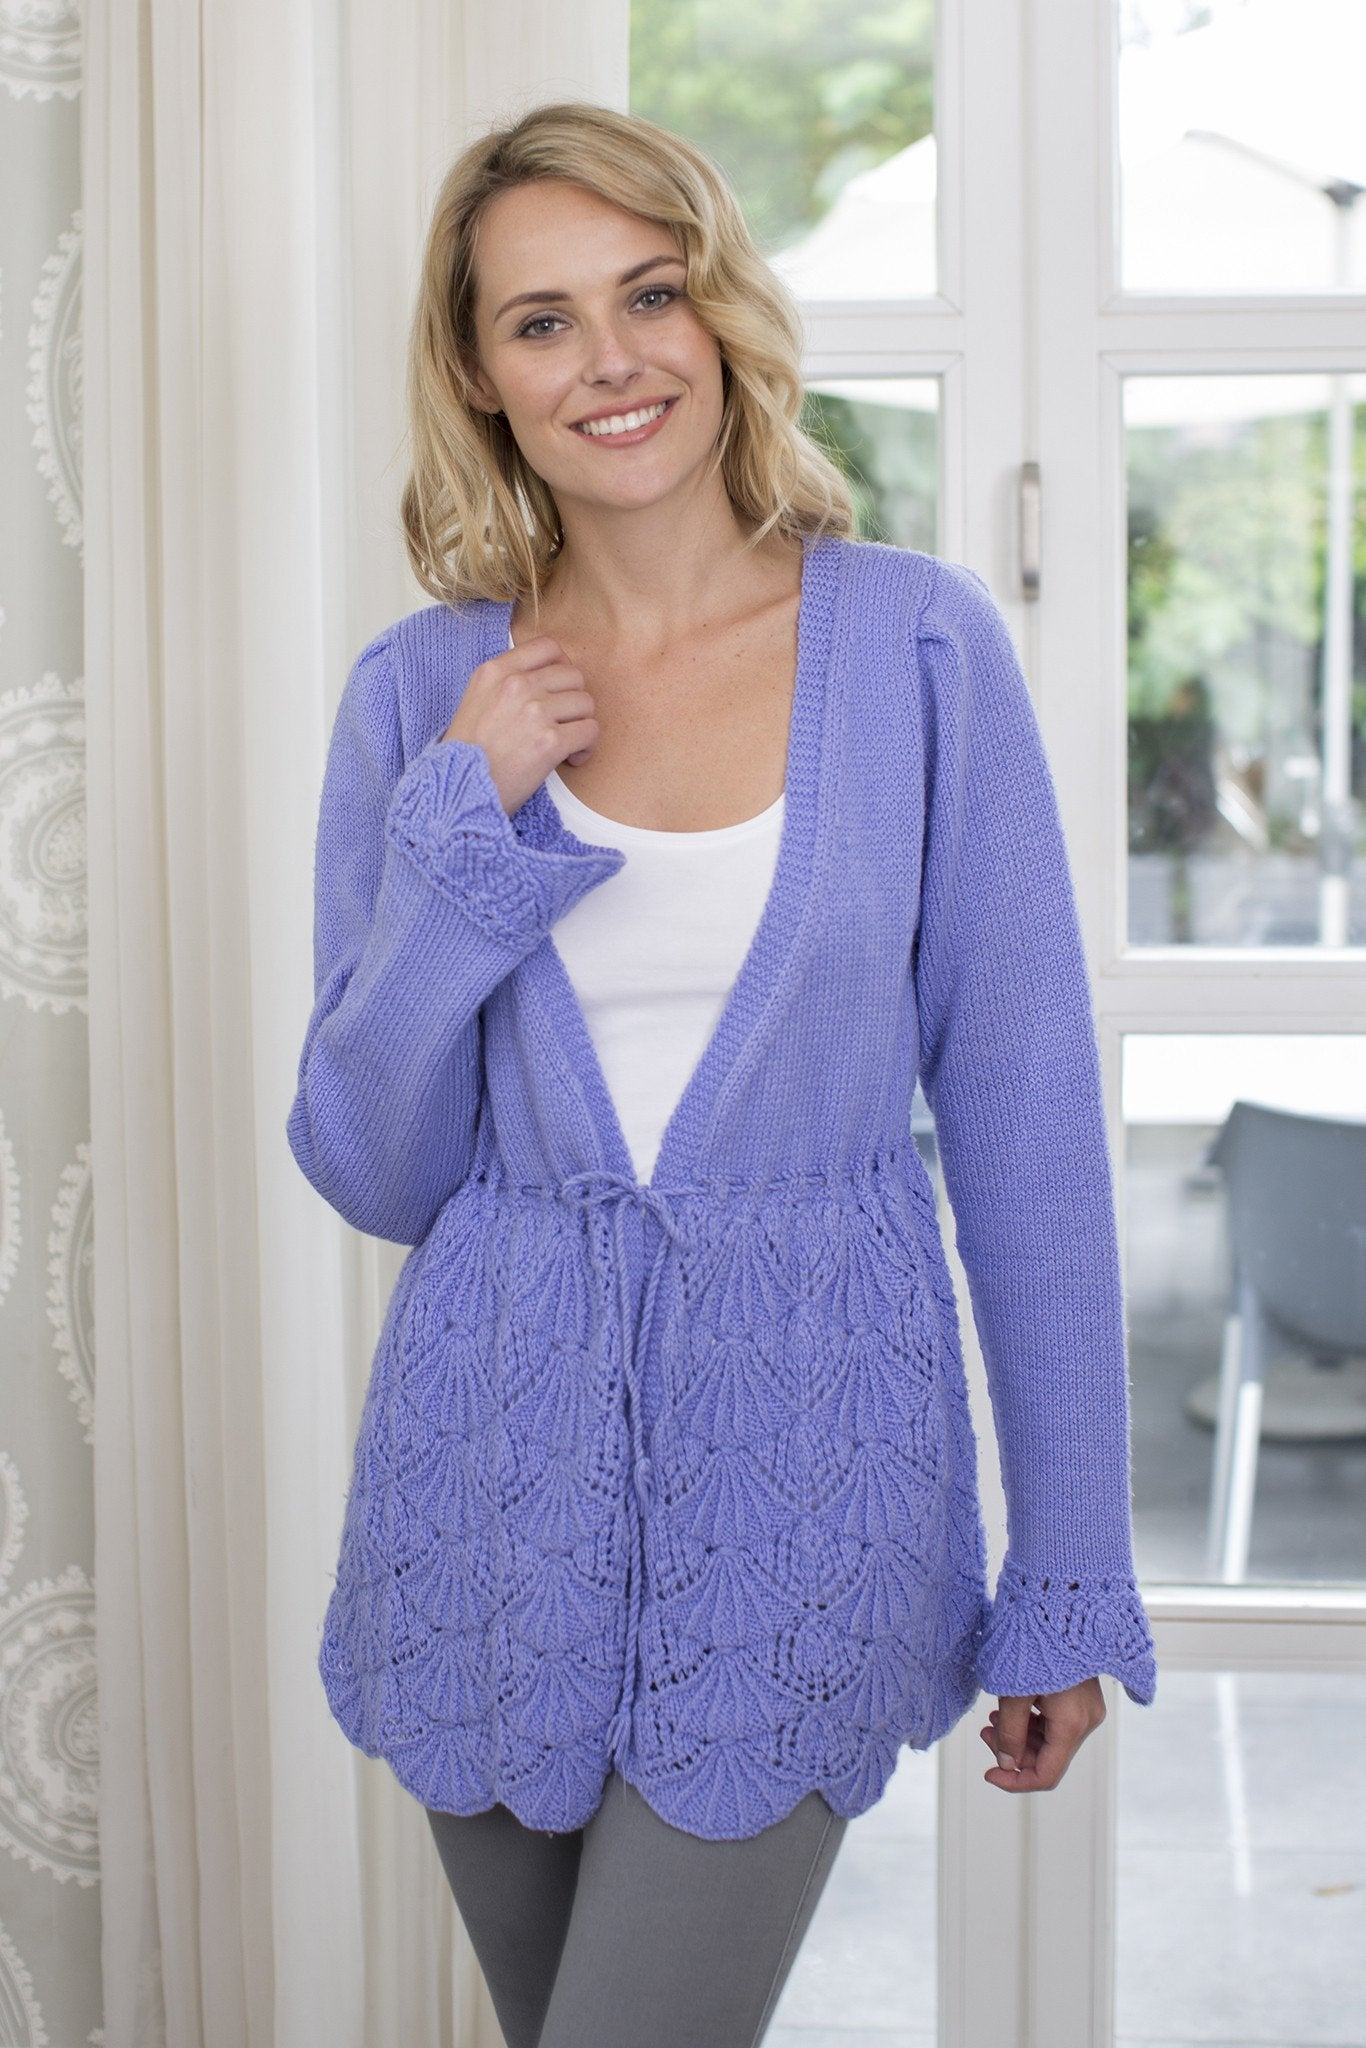 Ladies lace cardigan with scallop hem knitting pattern the ladies lace cardigan with scallop hem knitting pattern bankloansurffo Image collections